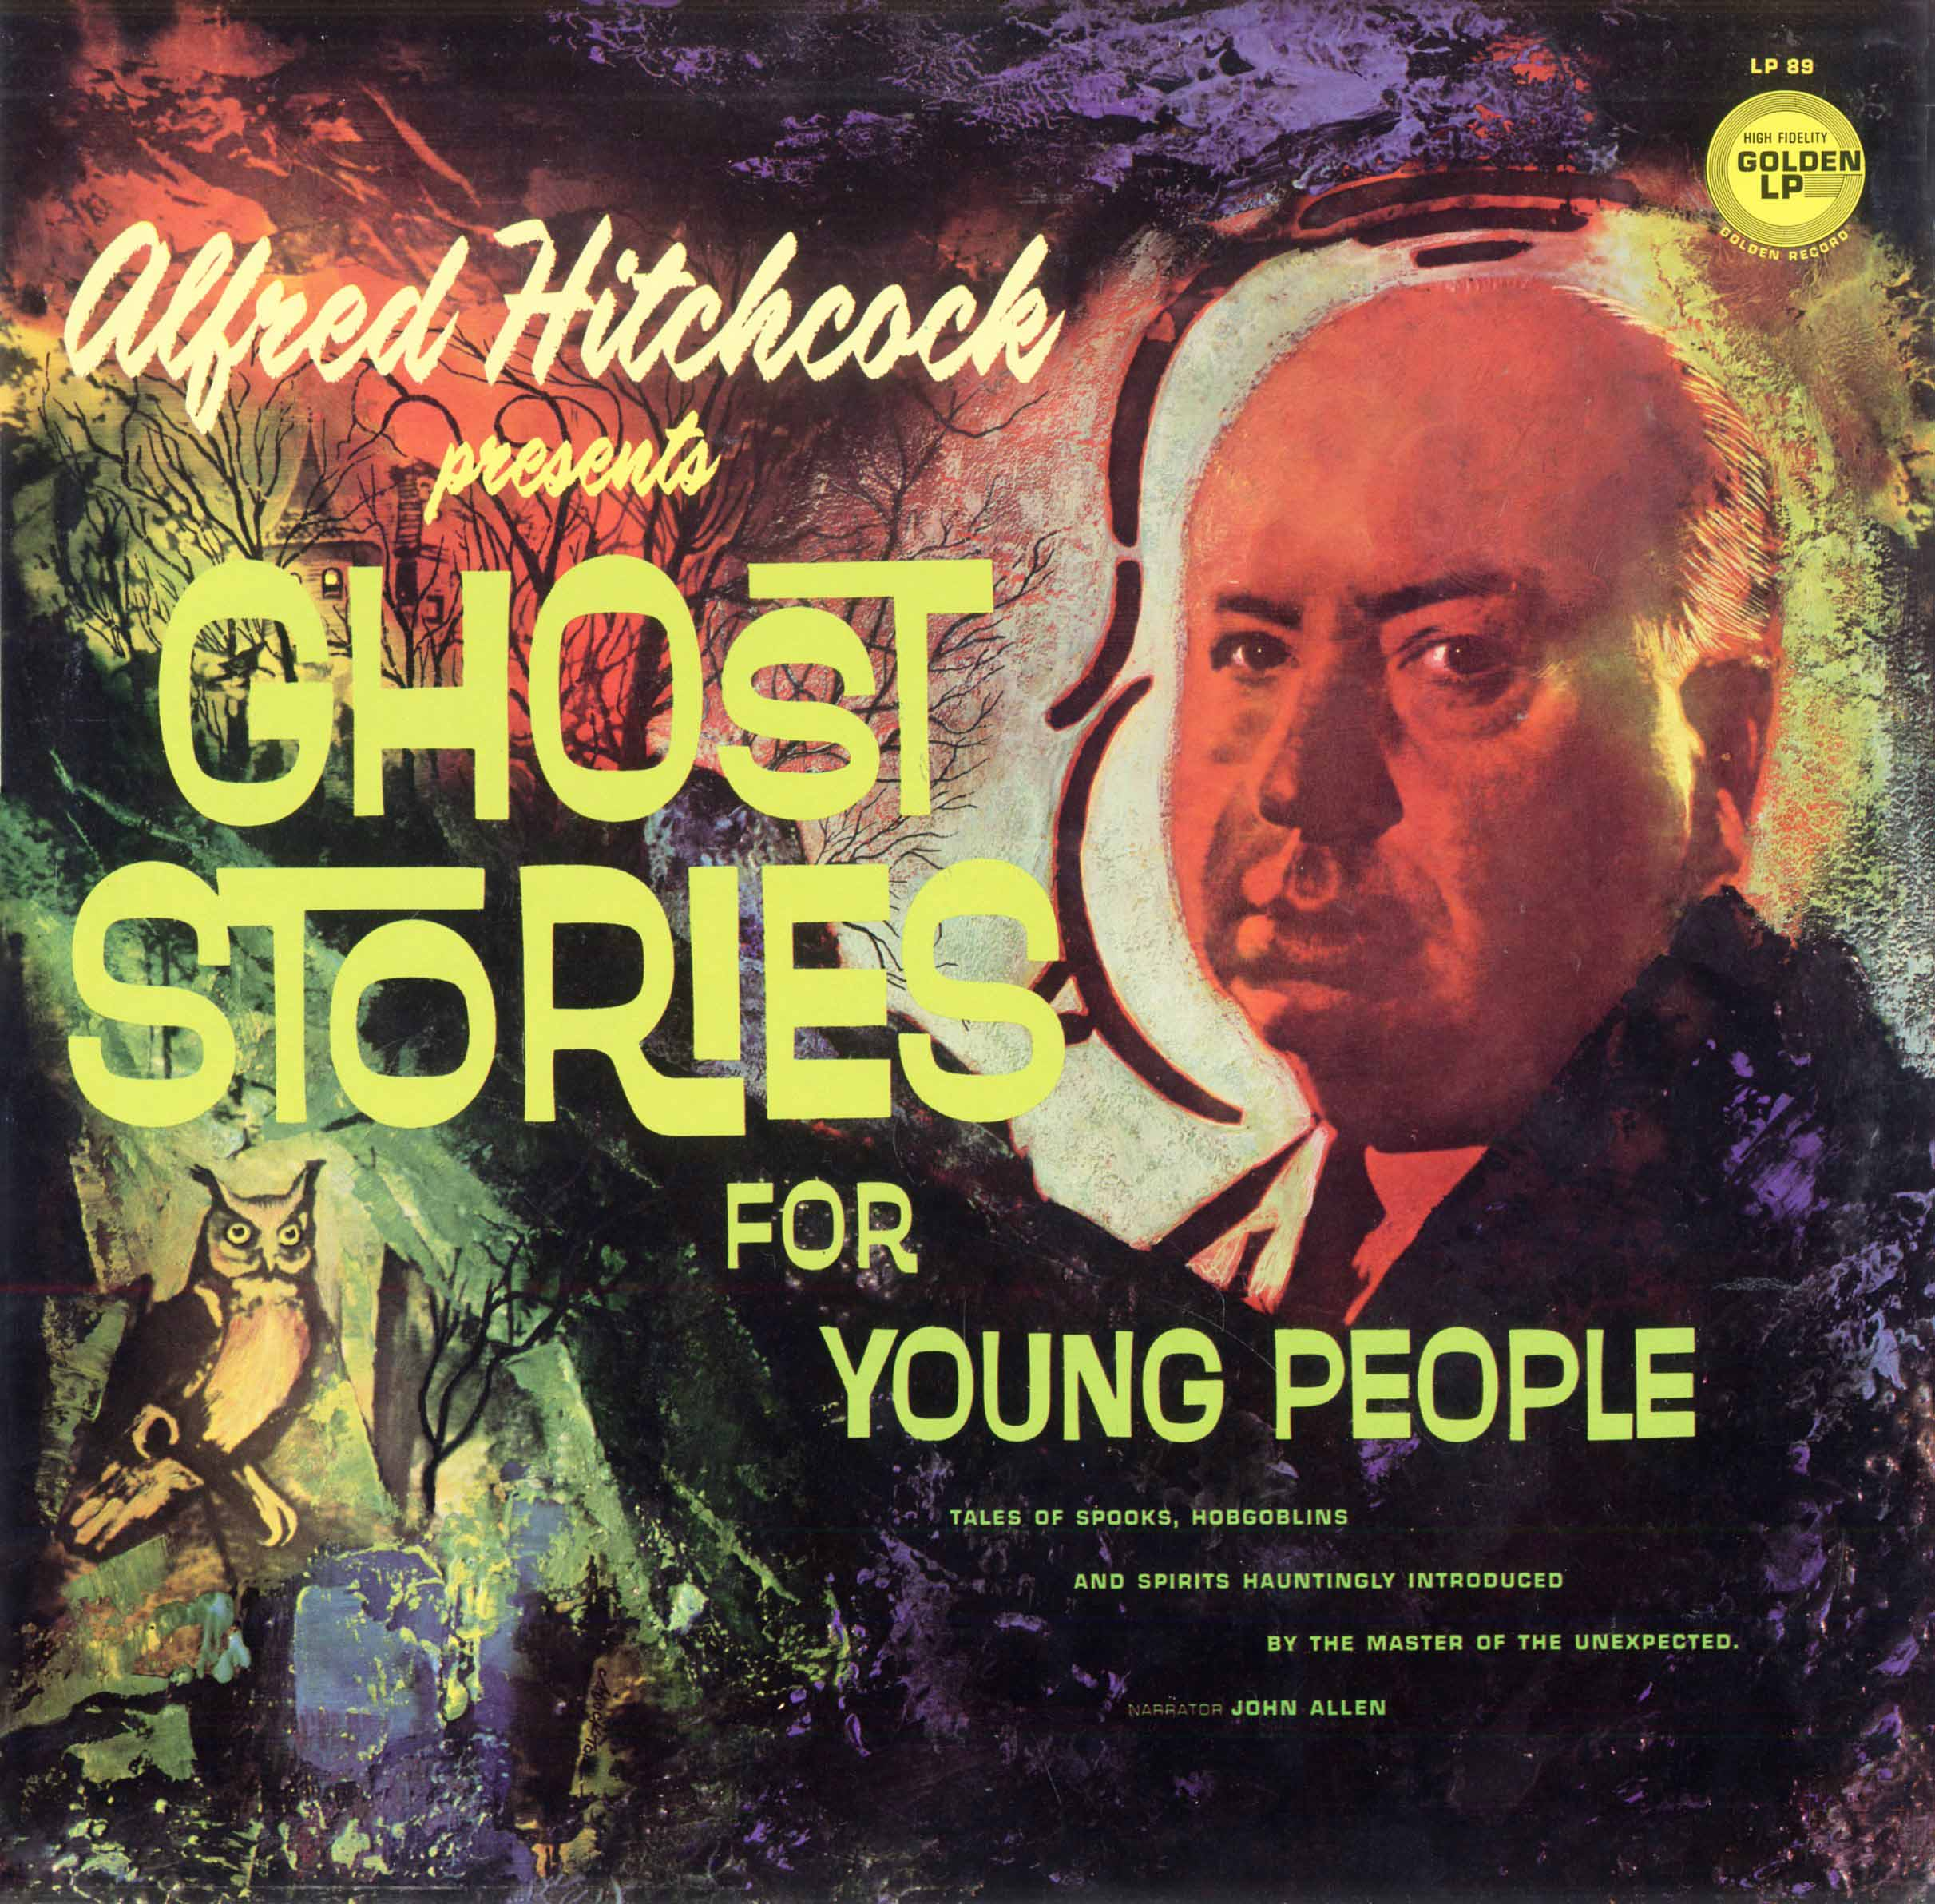 LP89 - Ghost Stories for Young People - Alfred Hitchcock on CD